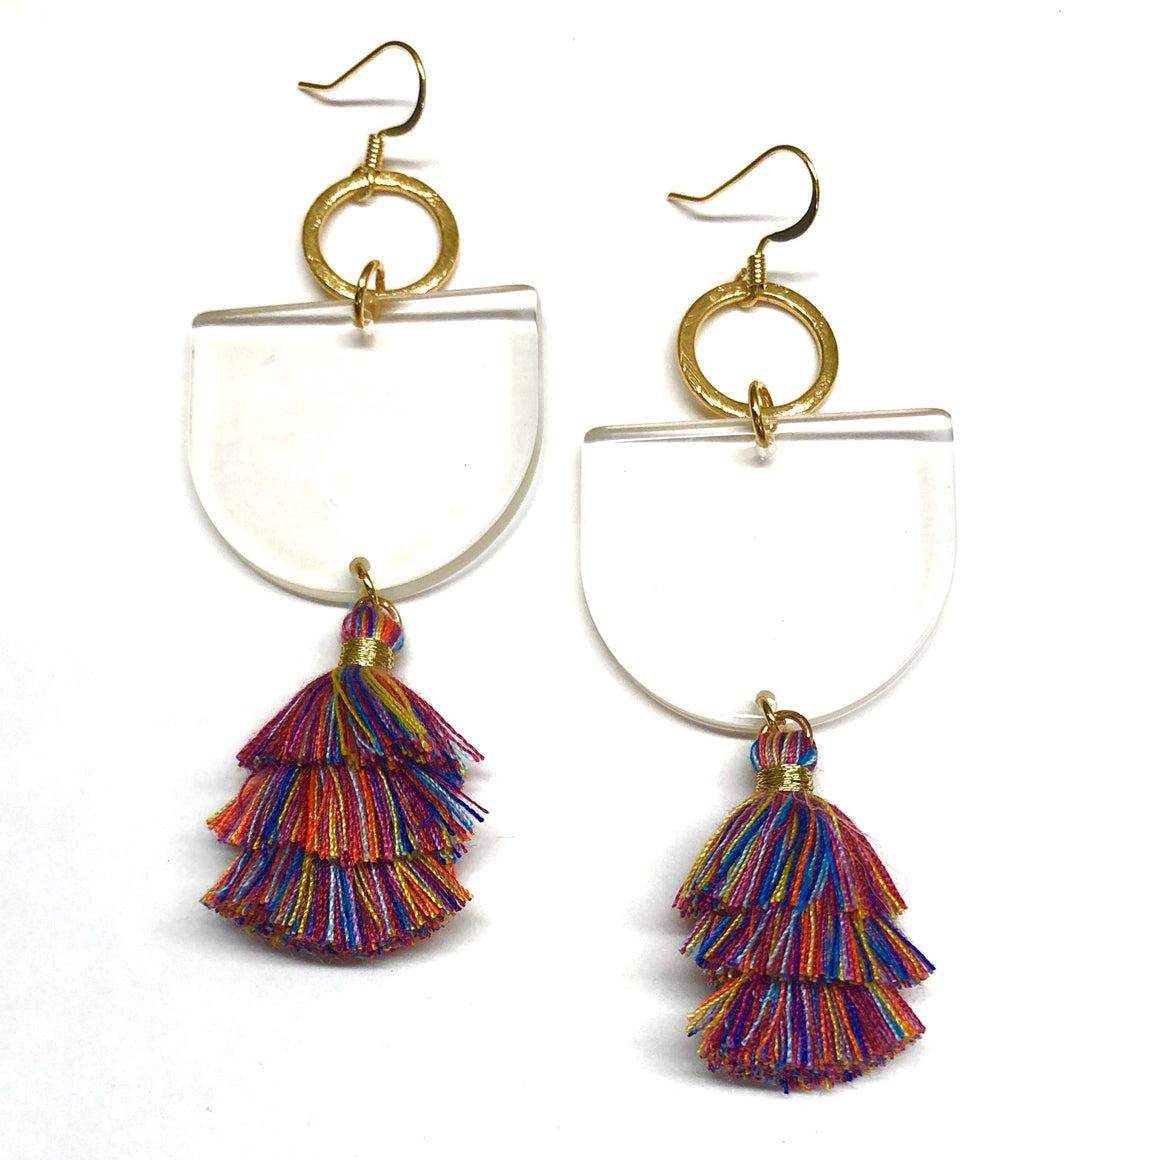 multi colored tassels on a clear acrylic shape with golden hoop